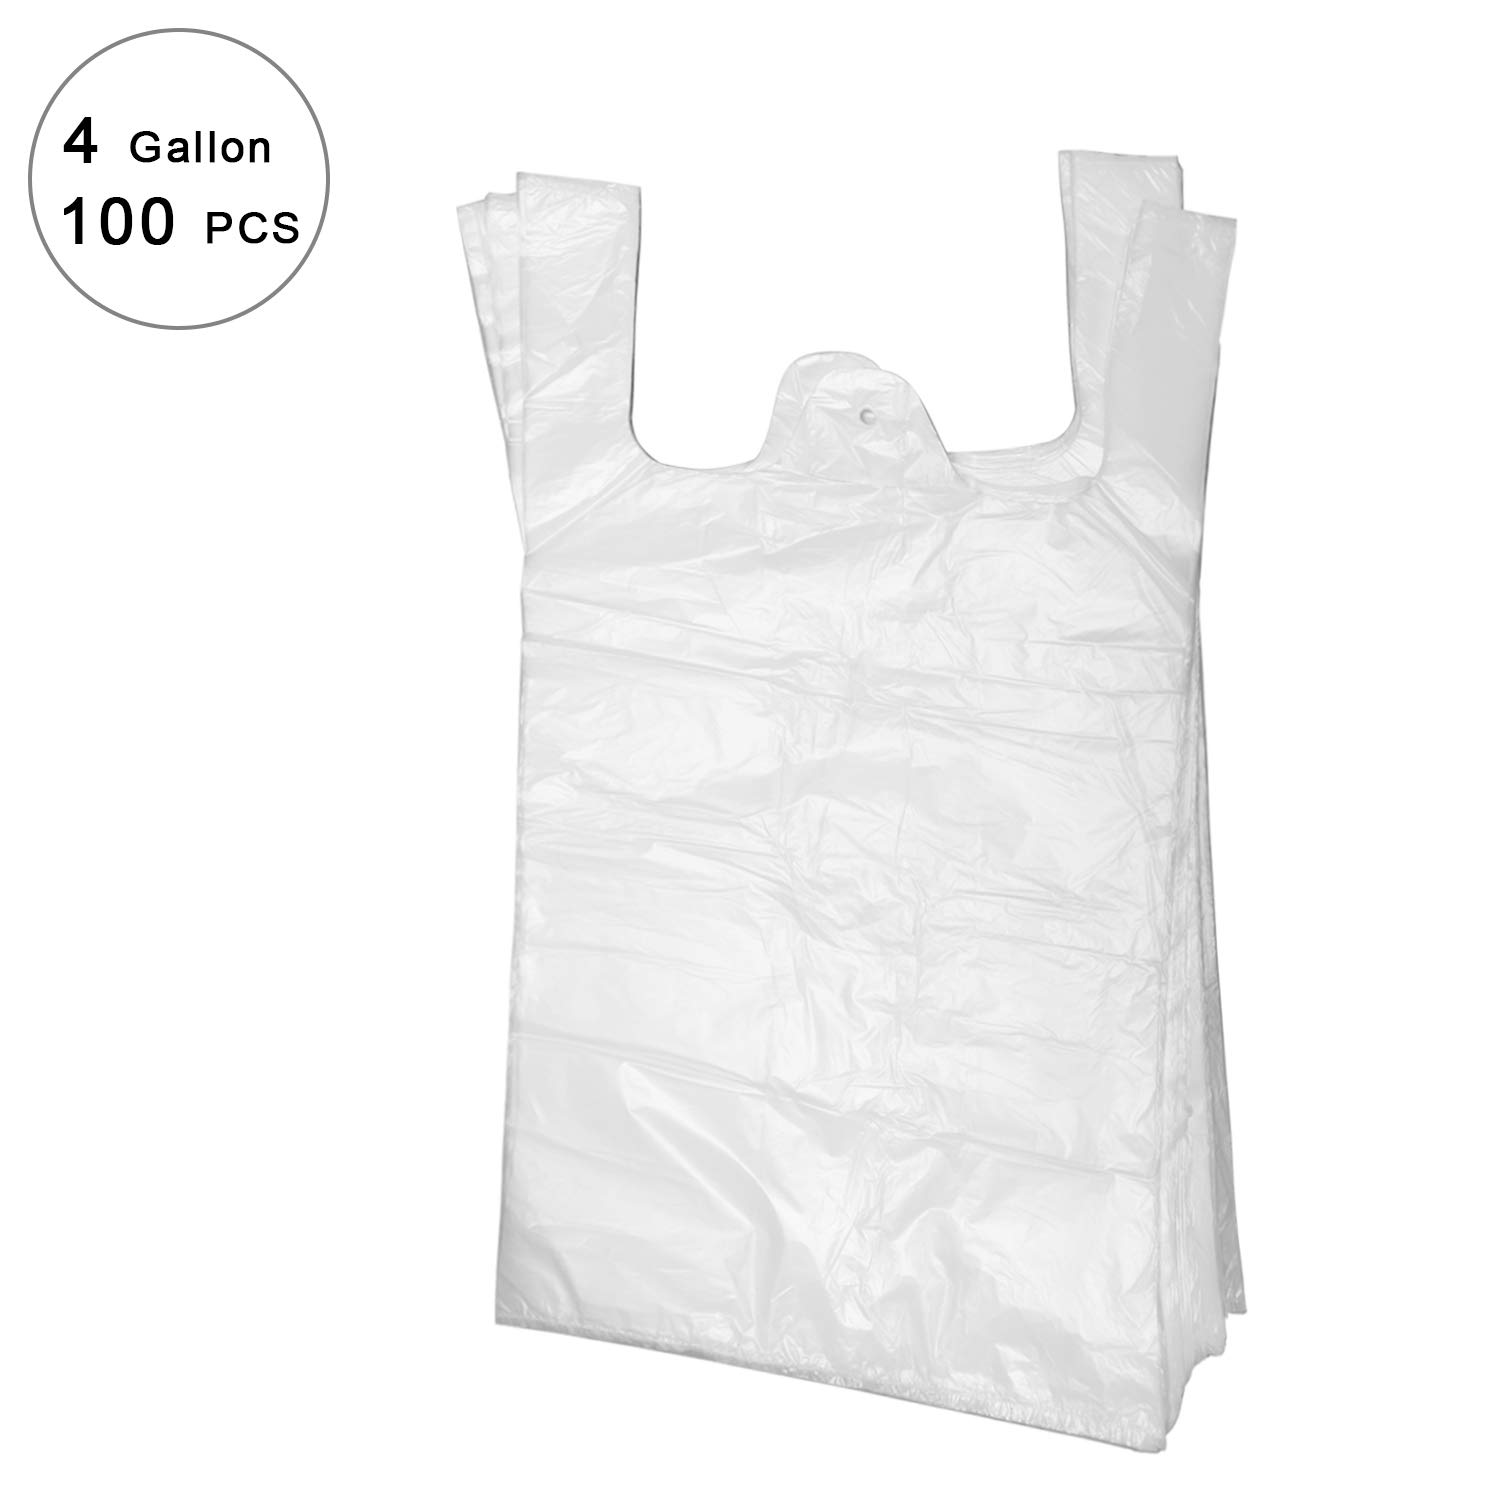 Shopping Bags/Grocery Bags, kitchen trash bags, Reusable Grocery Plastic Bags 100 Count t-shirt bags (Small shopping bags)